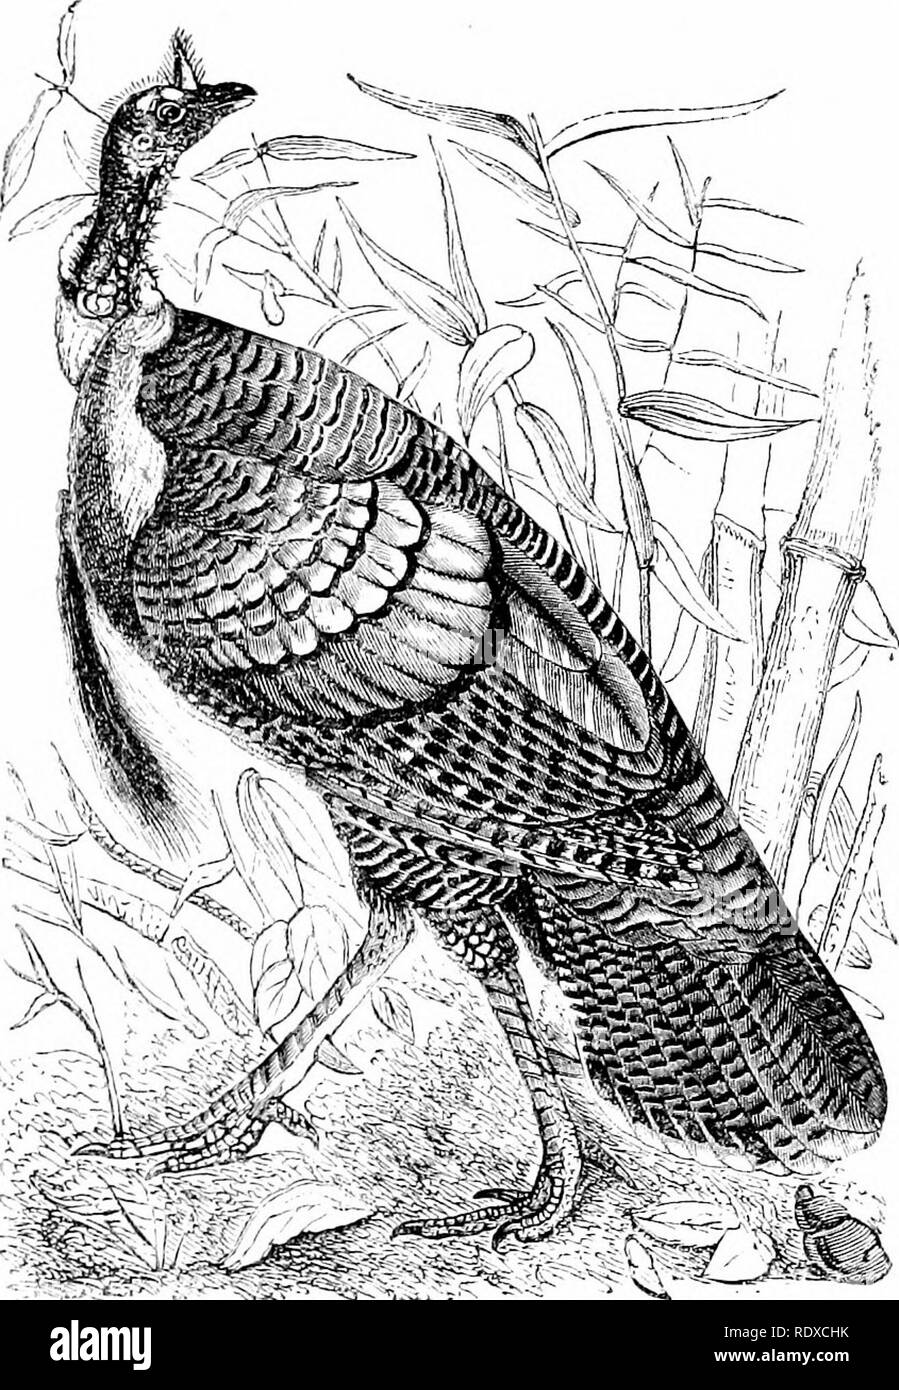 . Reptiles and birds : a popular account of their various orders : with a description of the habits and economy of the most interesting . Birds; Reptiles. WILD TTJEKET. 439 themselves at the least appearance of danger; but if perched ujjon a tree they are less guarded, and consequently can be more easily approached by the sportsman. On a misty, moonlight night American hunters take their posts under trees where Turkeys com- monly perch. In this situation the game will receive several. Fig. 177.—Wild Turkey. discharges without making the slightest attempt to escape, although numbers of them in  - Stock Image